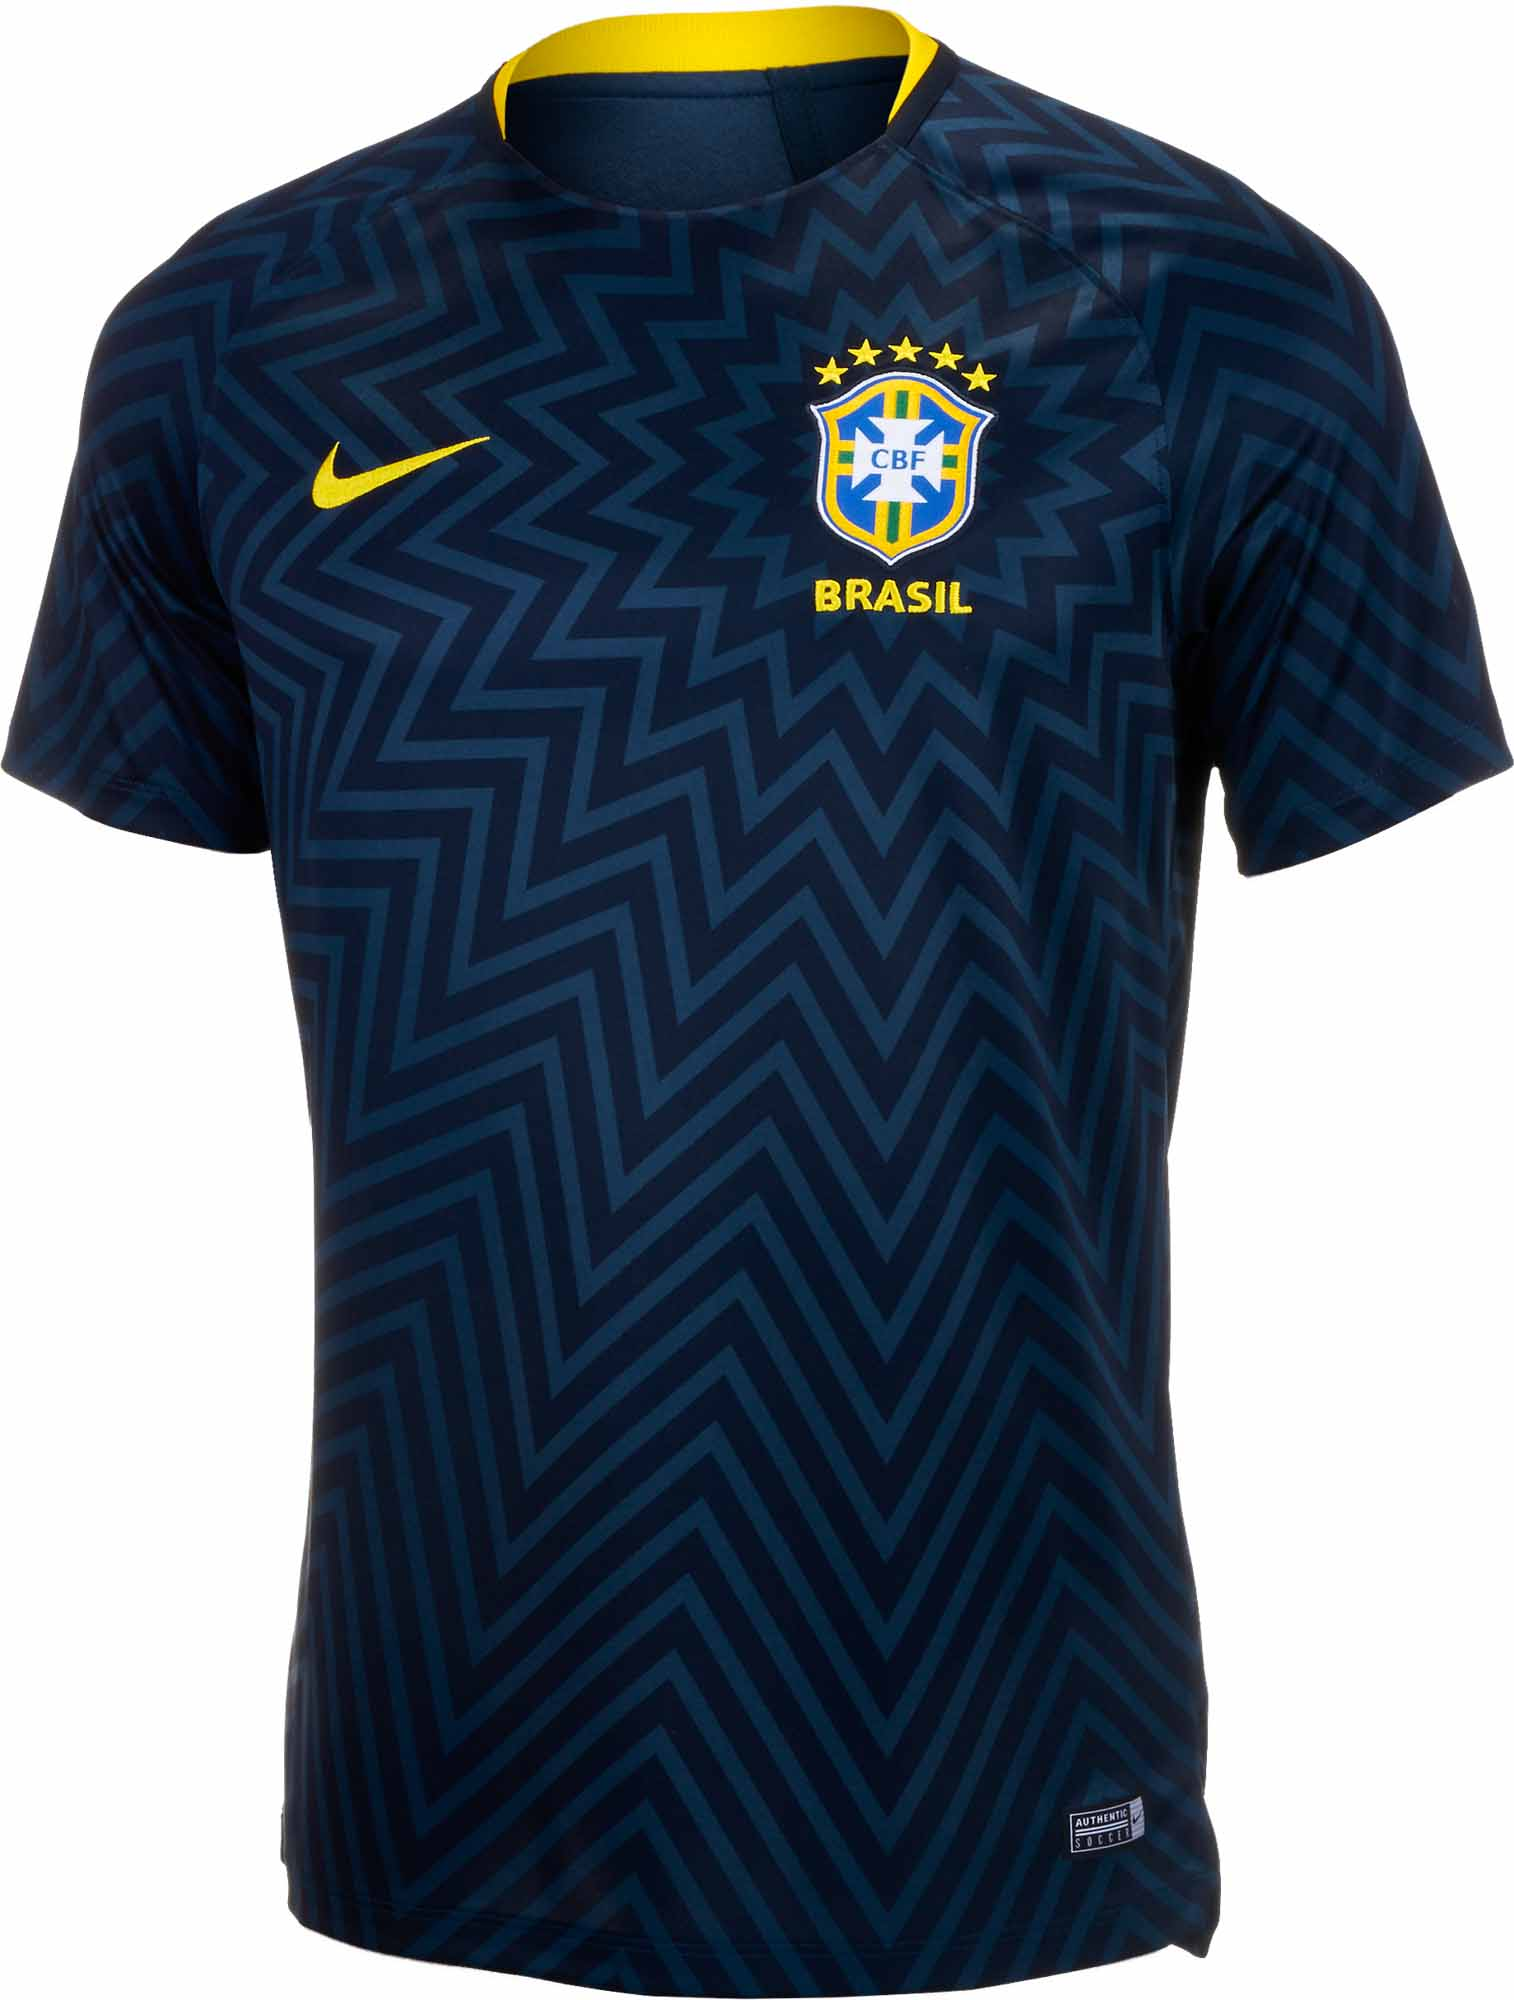 2018 2019 Croatia Pre match Training Shirt Women's T Shirt In Blue